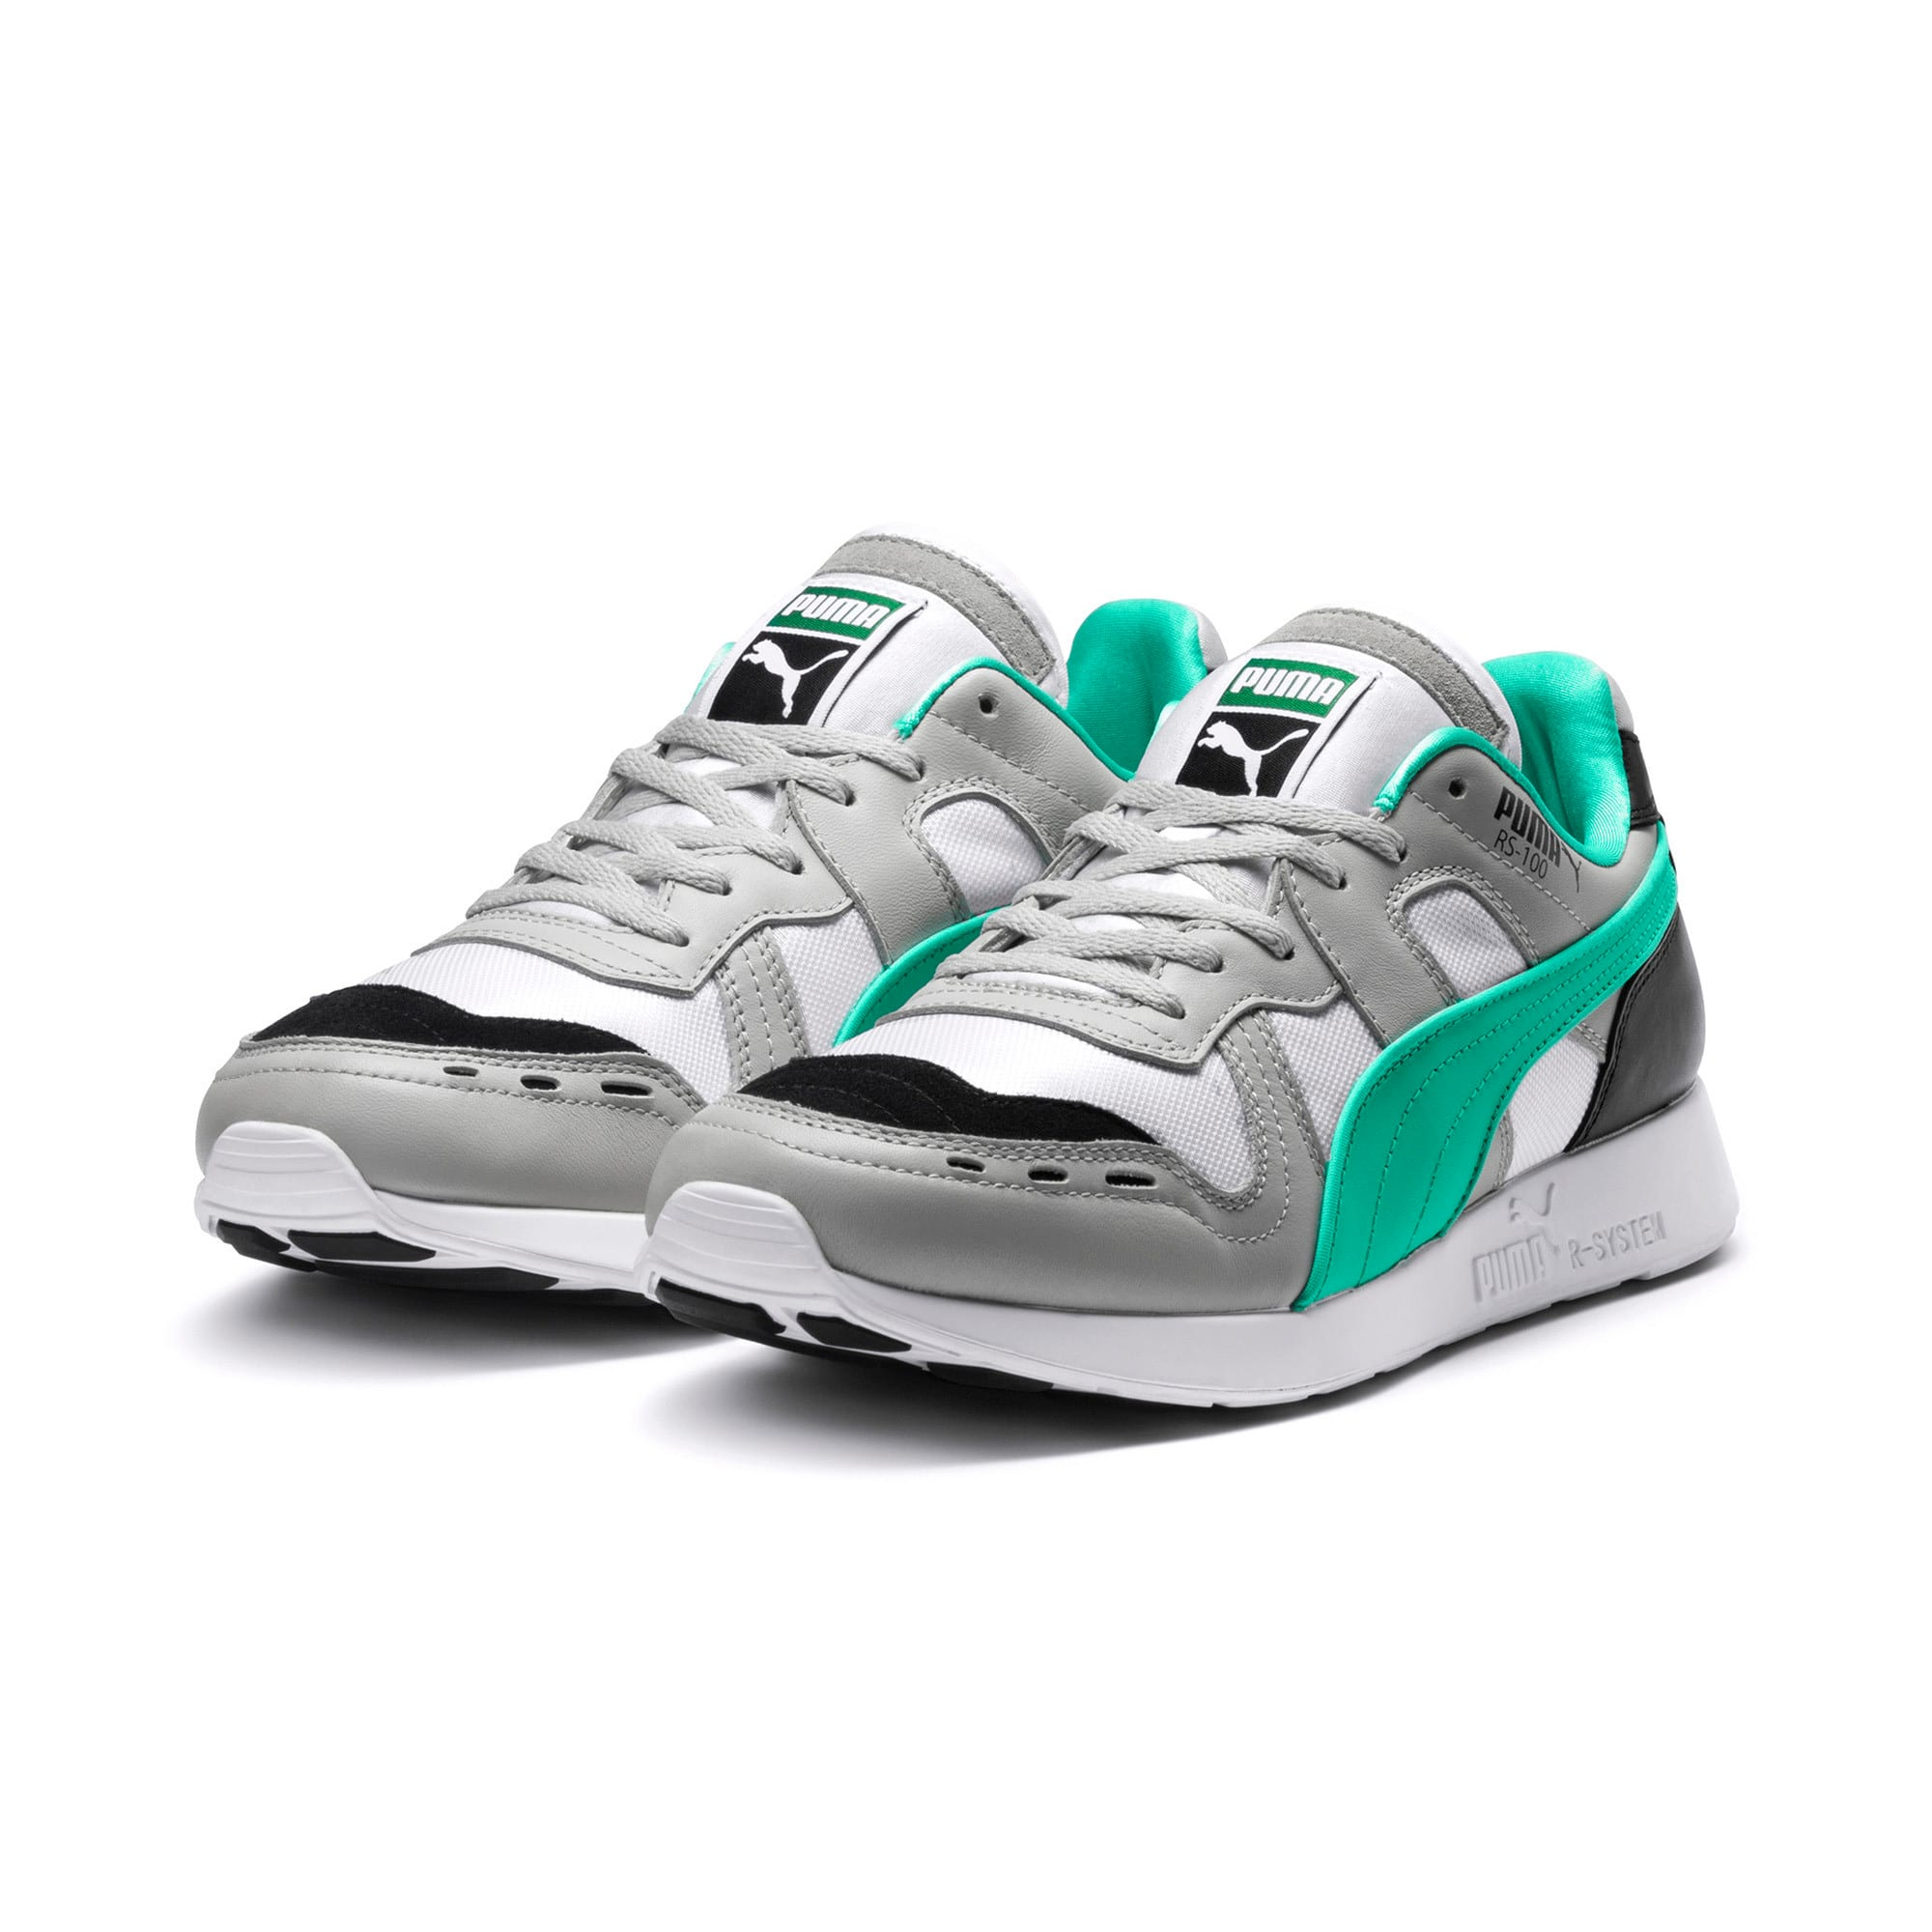 Thumbnail 2 of RS-100 Re-Invention Sneakers, GrayViolet-BiscayGreen-White, medium